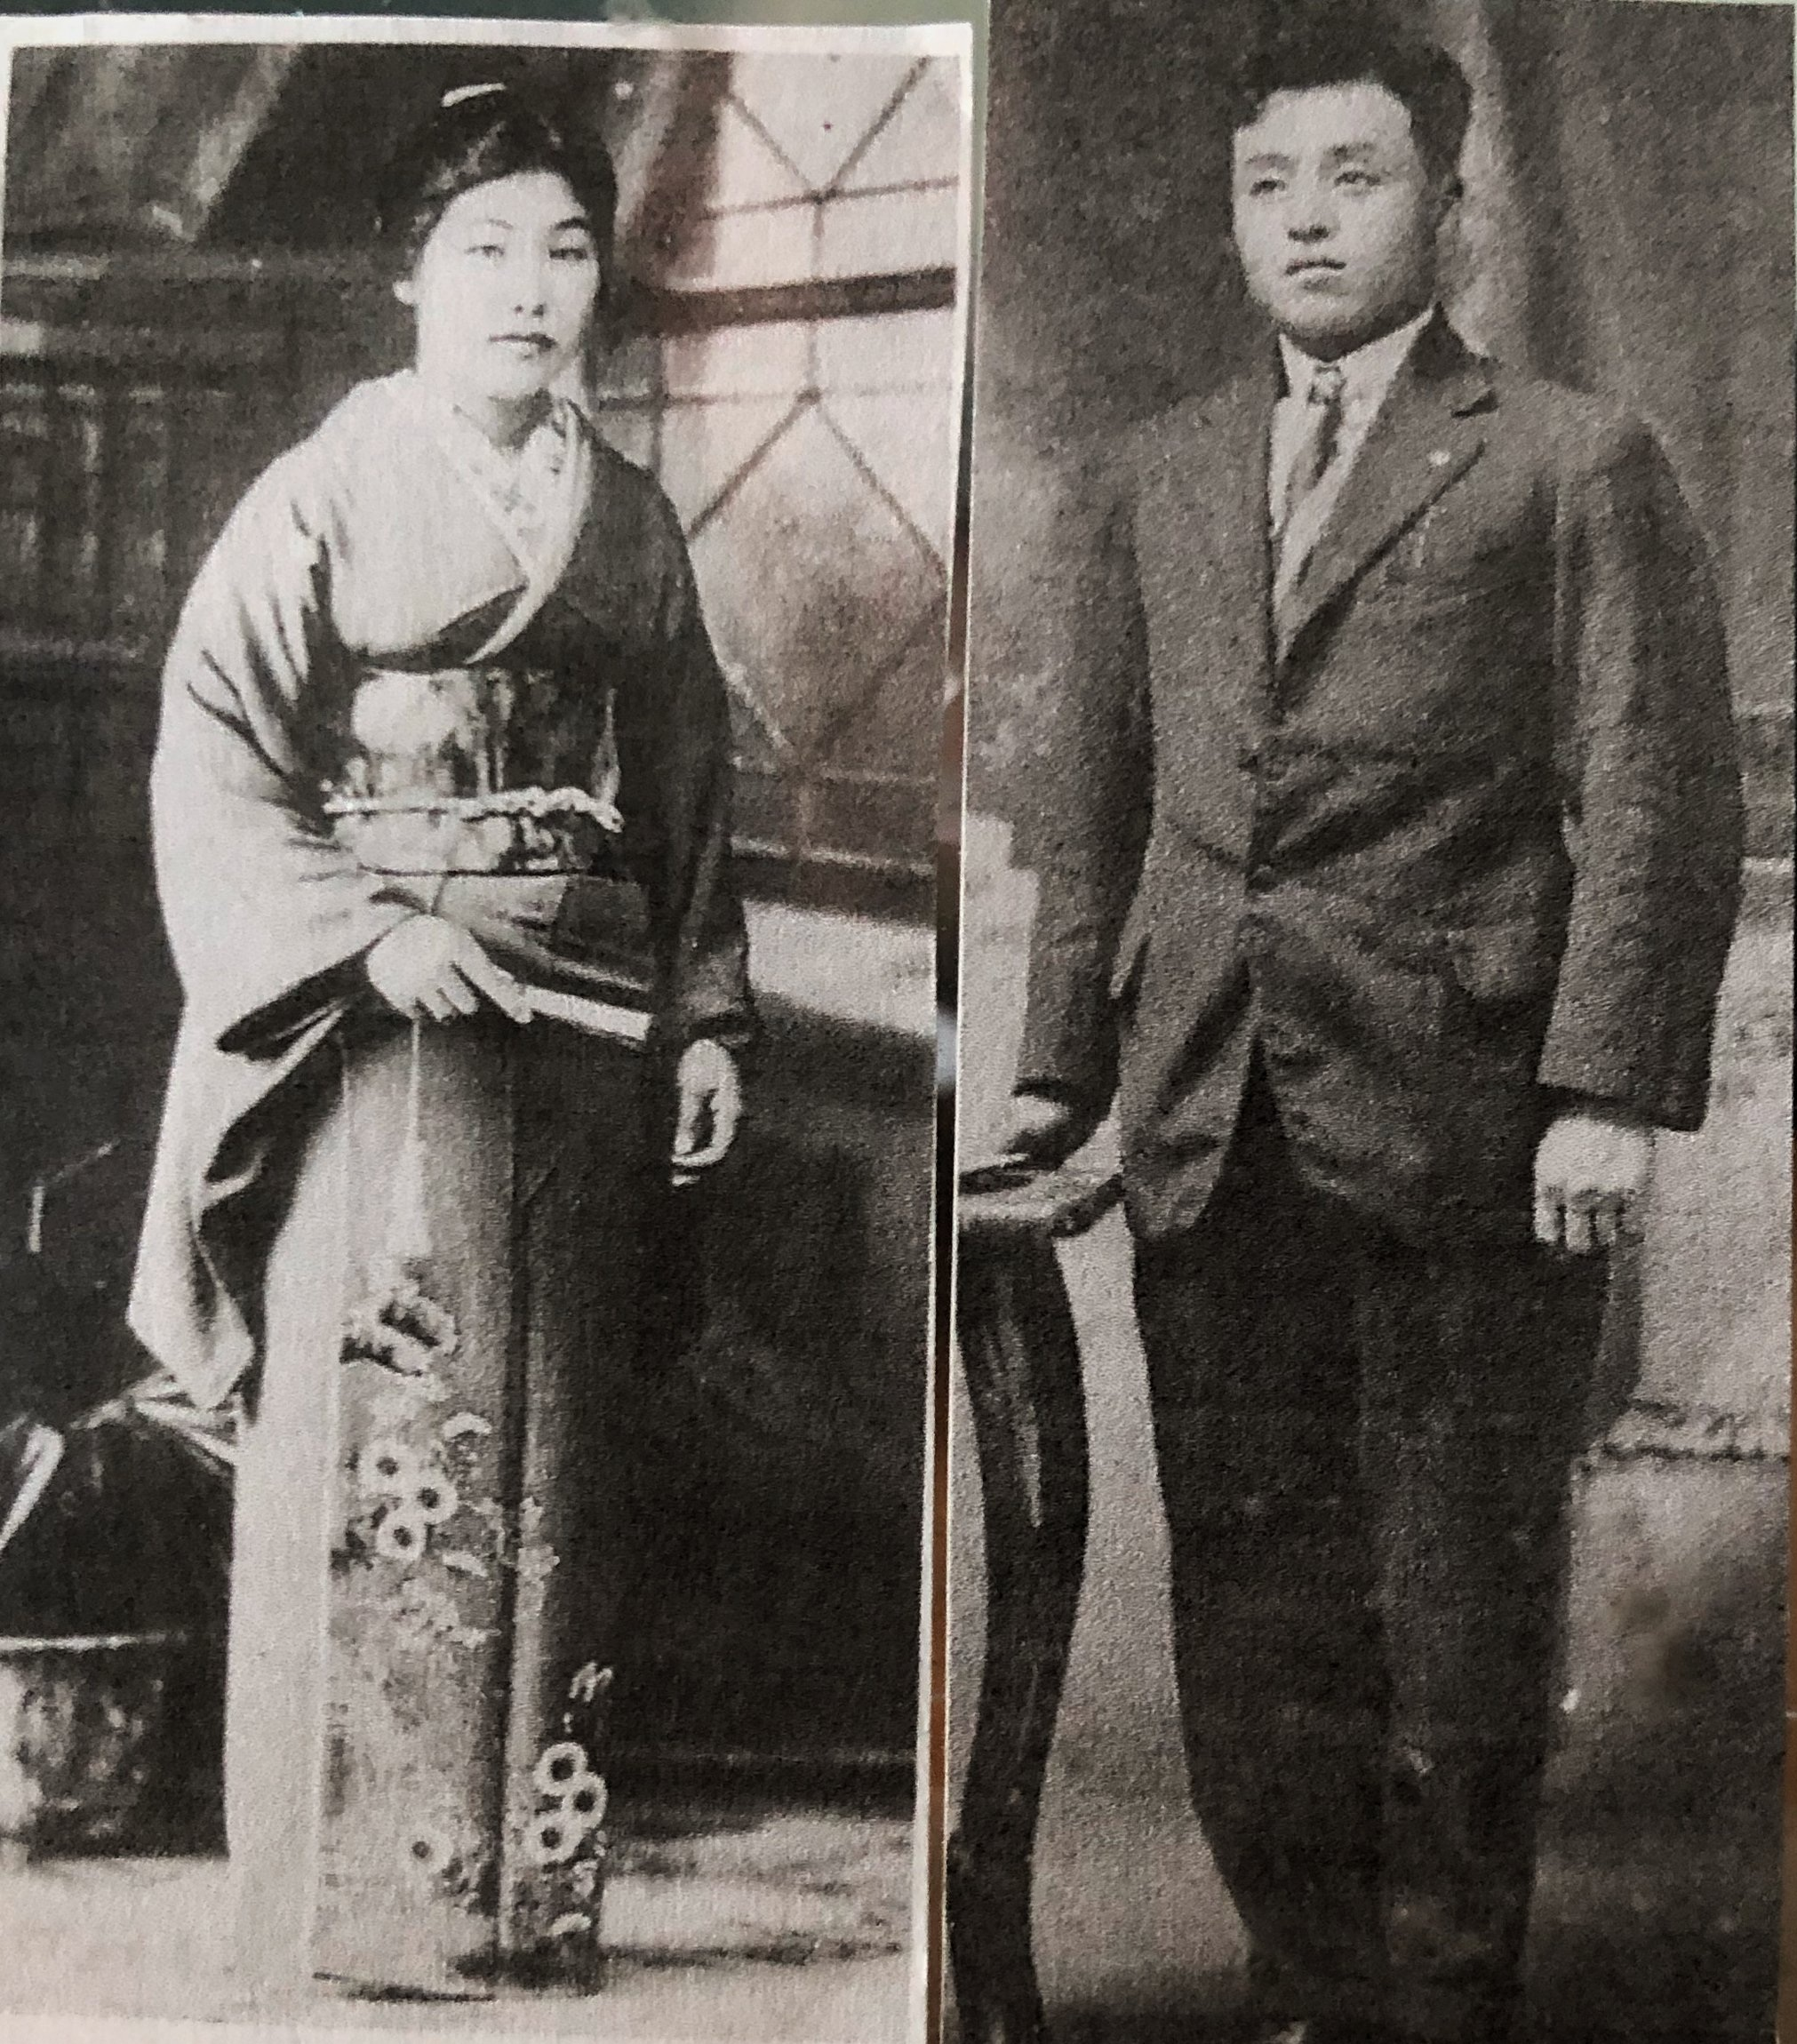 Sensei June's Grandparents, Tomeyo Tahara and Joichi Tahara